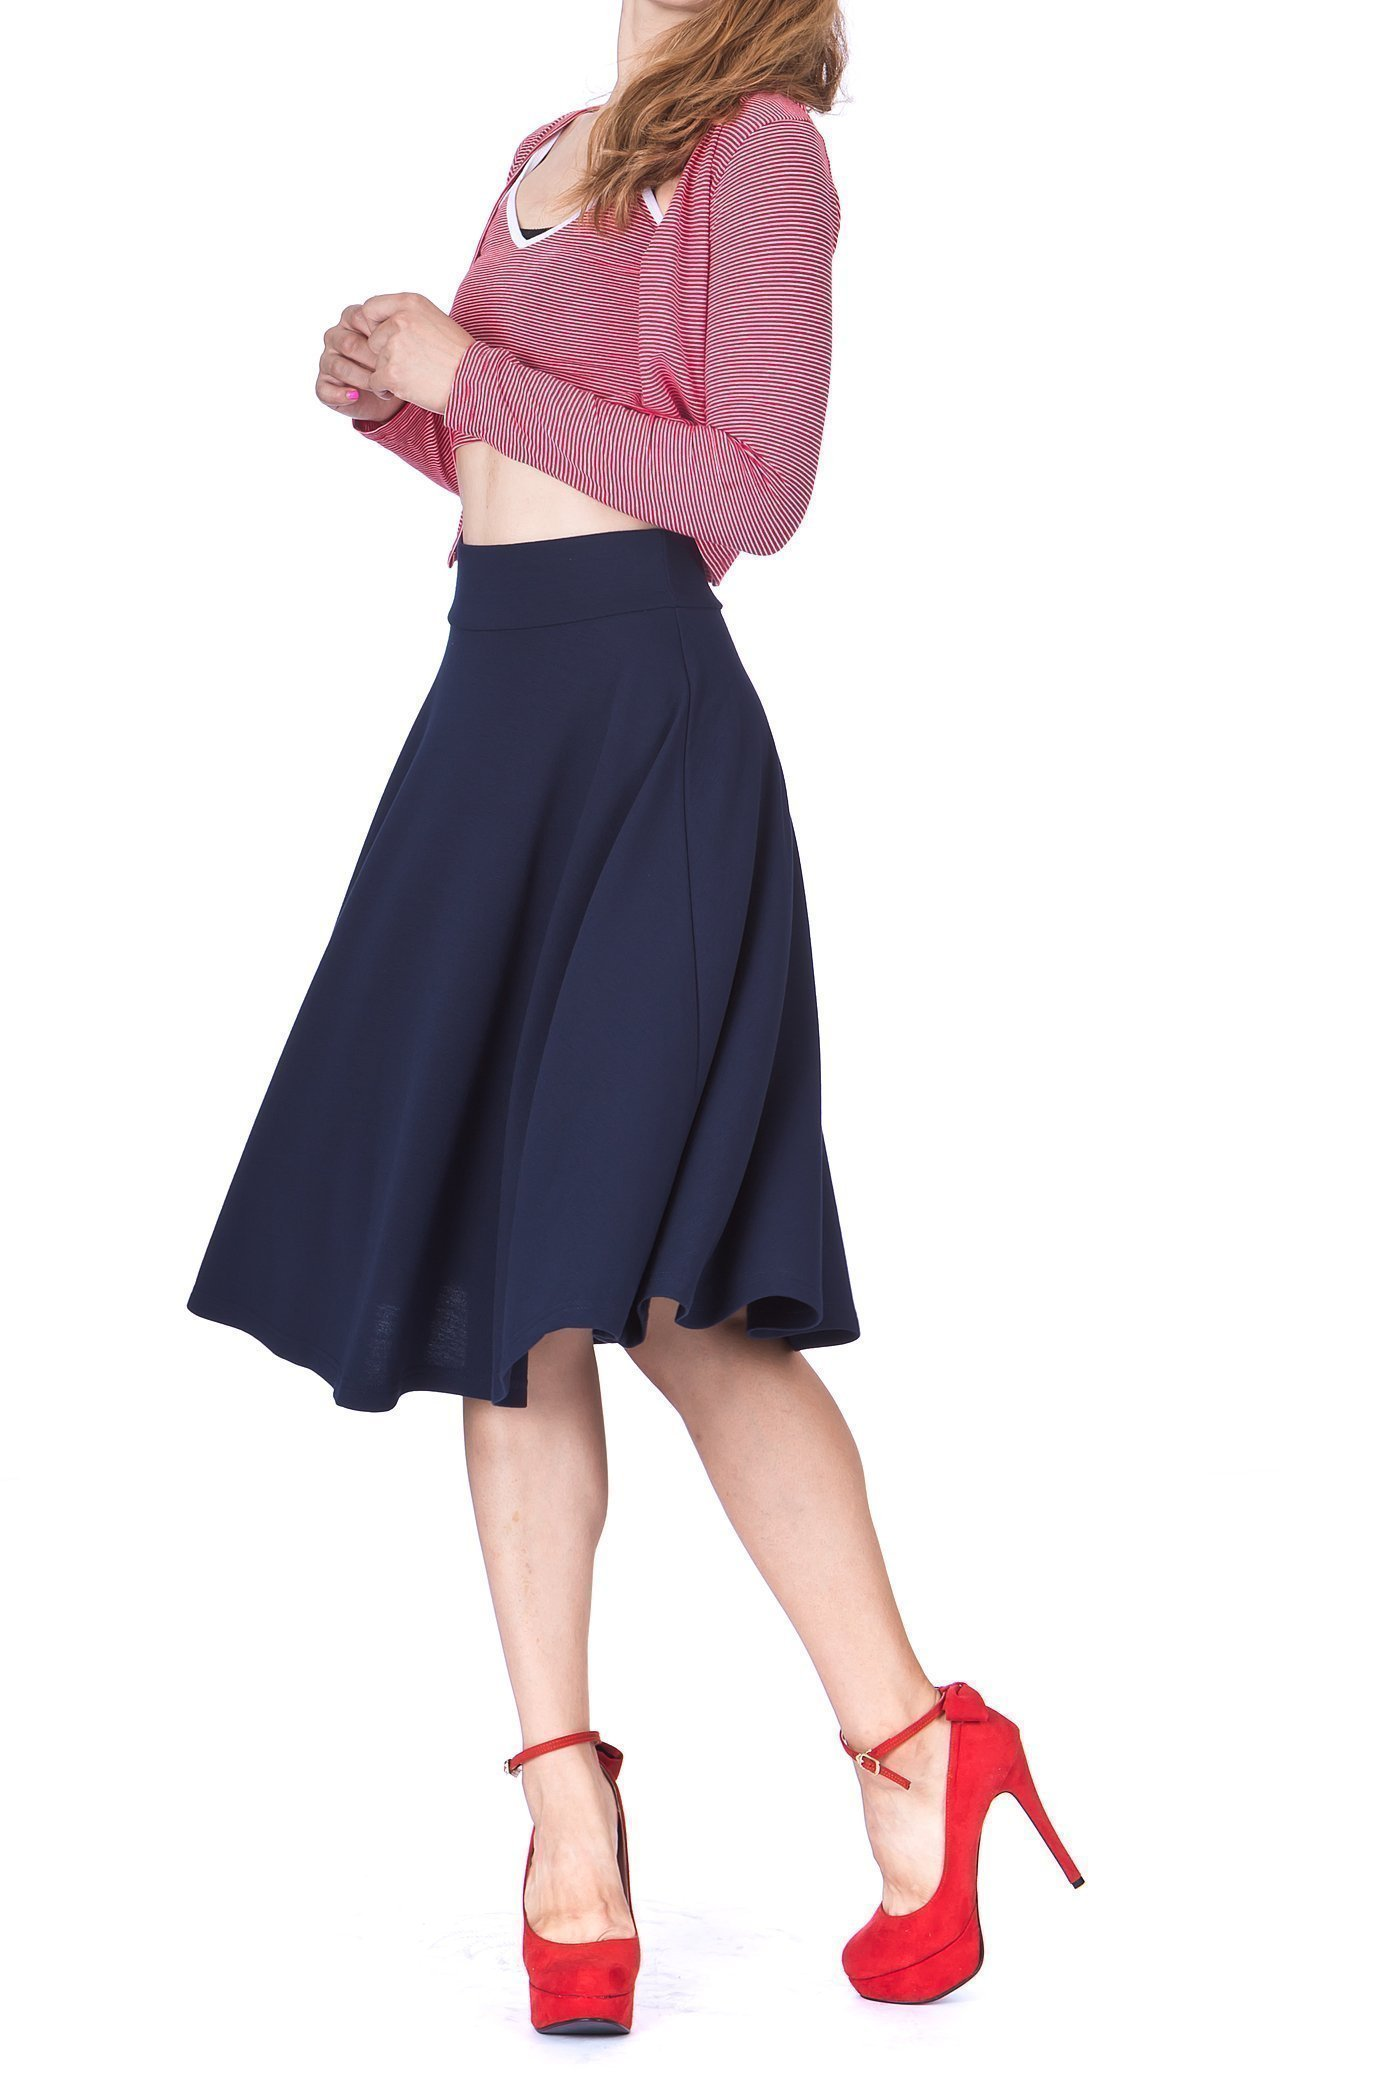 Feel The Retro Mood Wide High Waist A line Full Flared Swing Skater Midi Skirt Navy 4